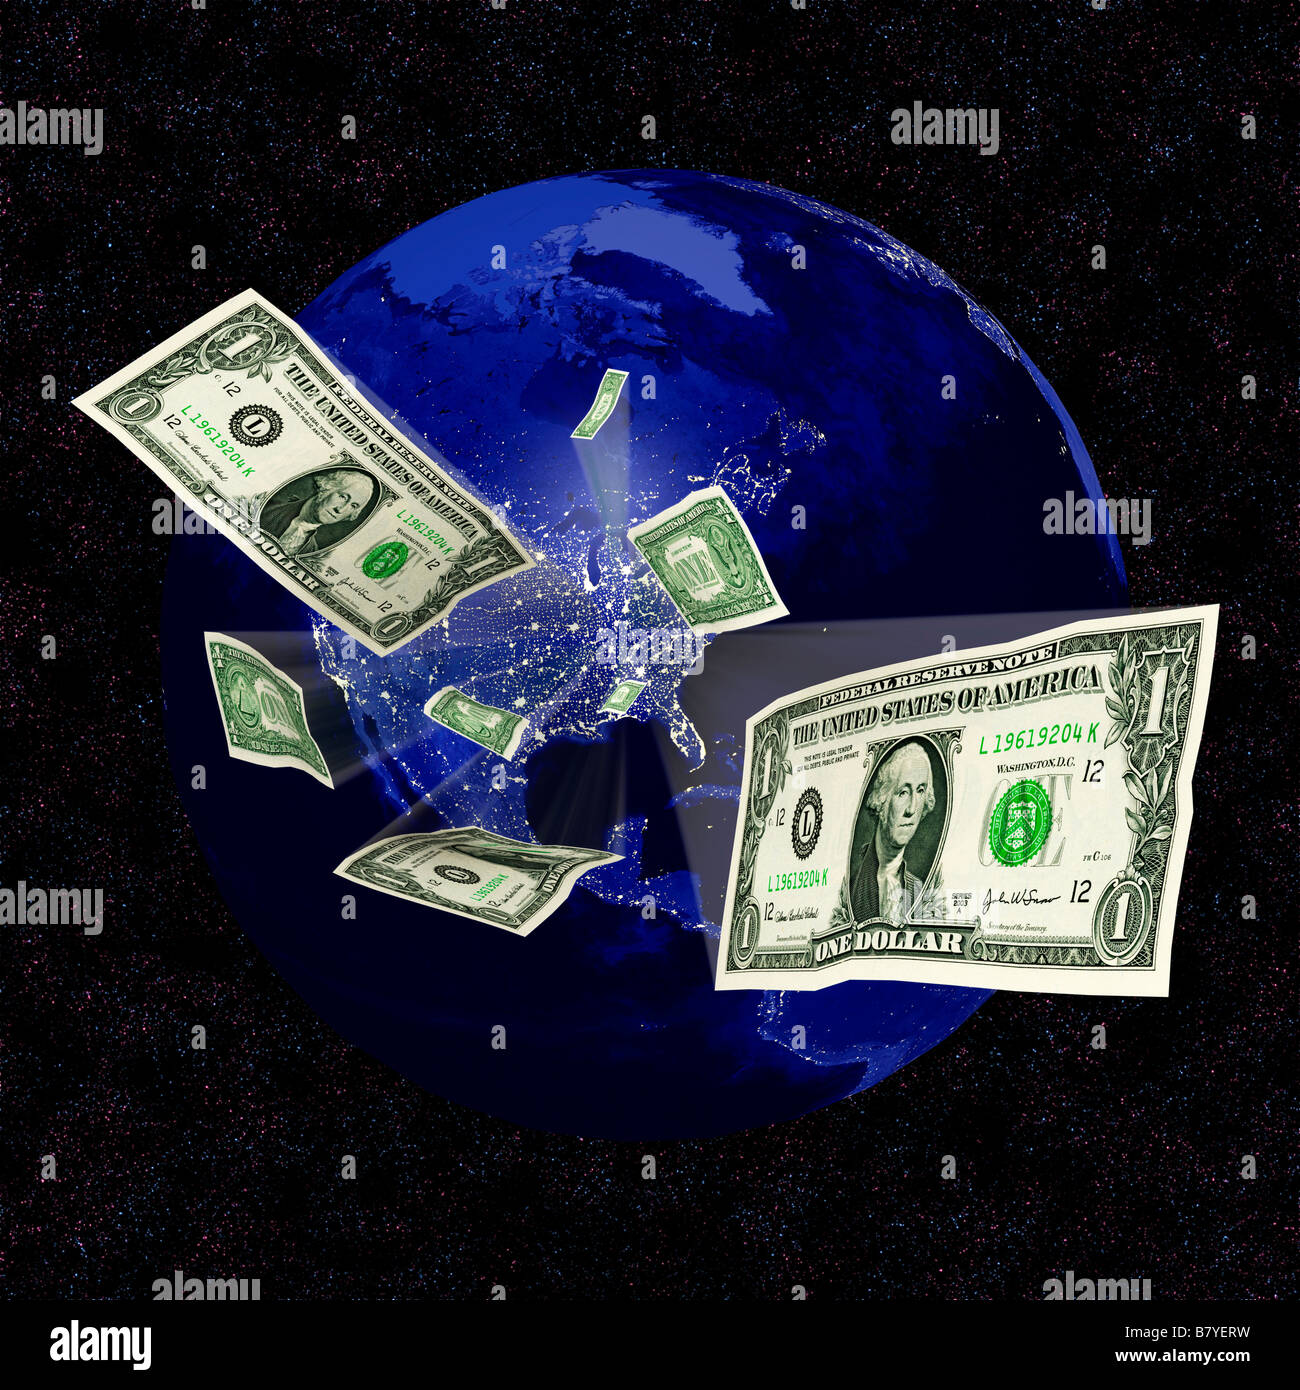 Wasting energy concept dollars emerging from an illuminated USA - digital composite - Stock Image